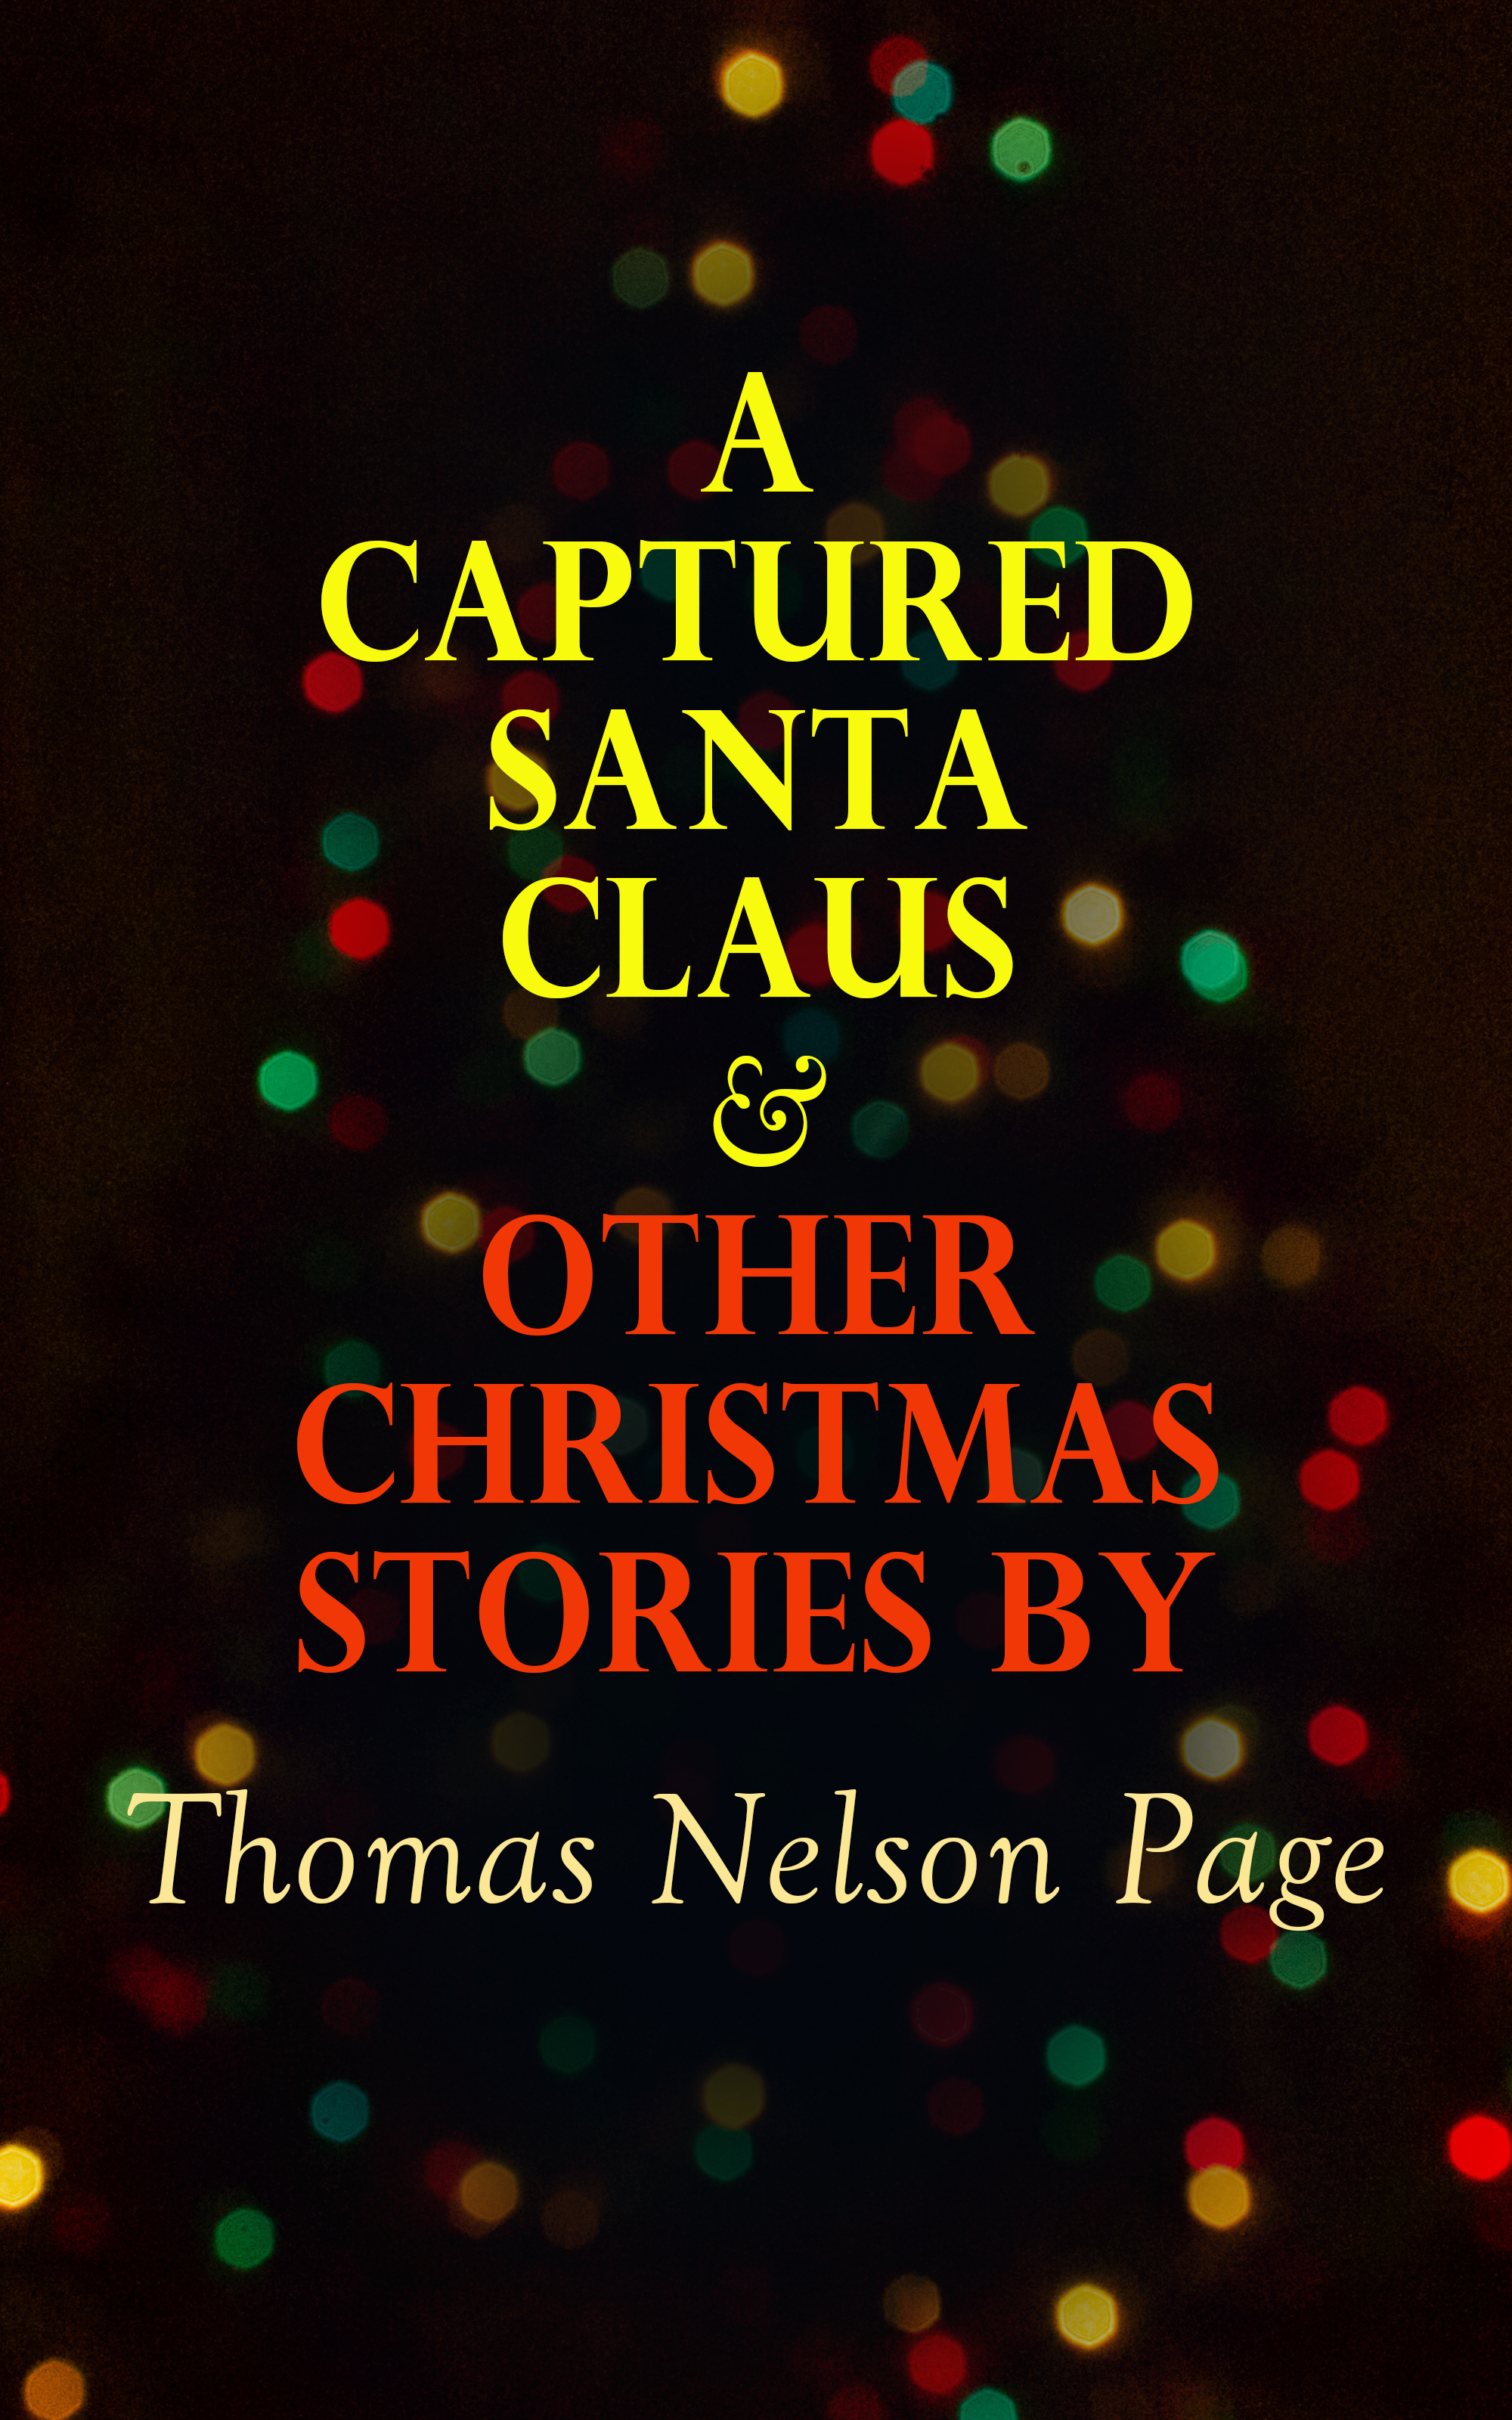 Thomas Nelson Page A Captured Santa Claus & Other Christmas Stories by Thomas Nelson Page sitemap html page 10 page 6 page 6 page 4 page 4 page 4 page 2